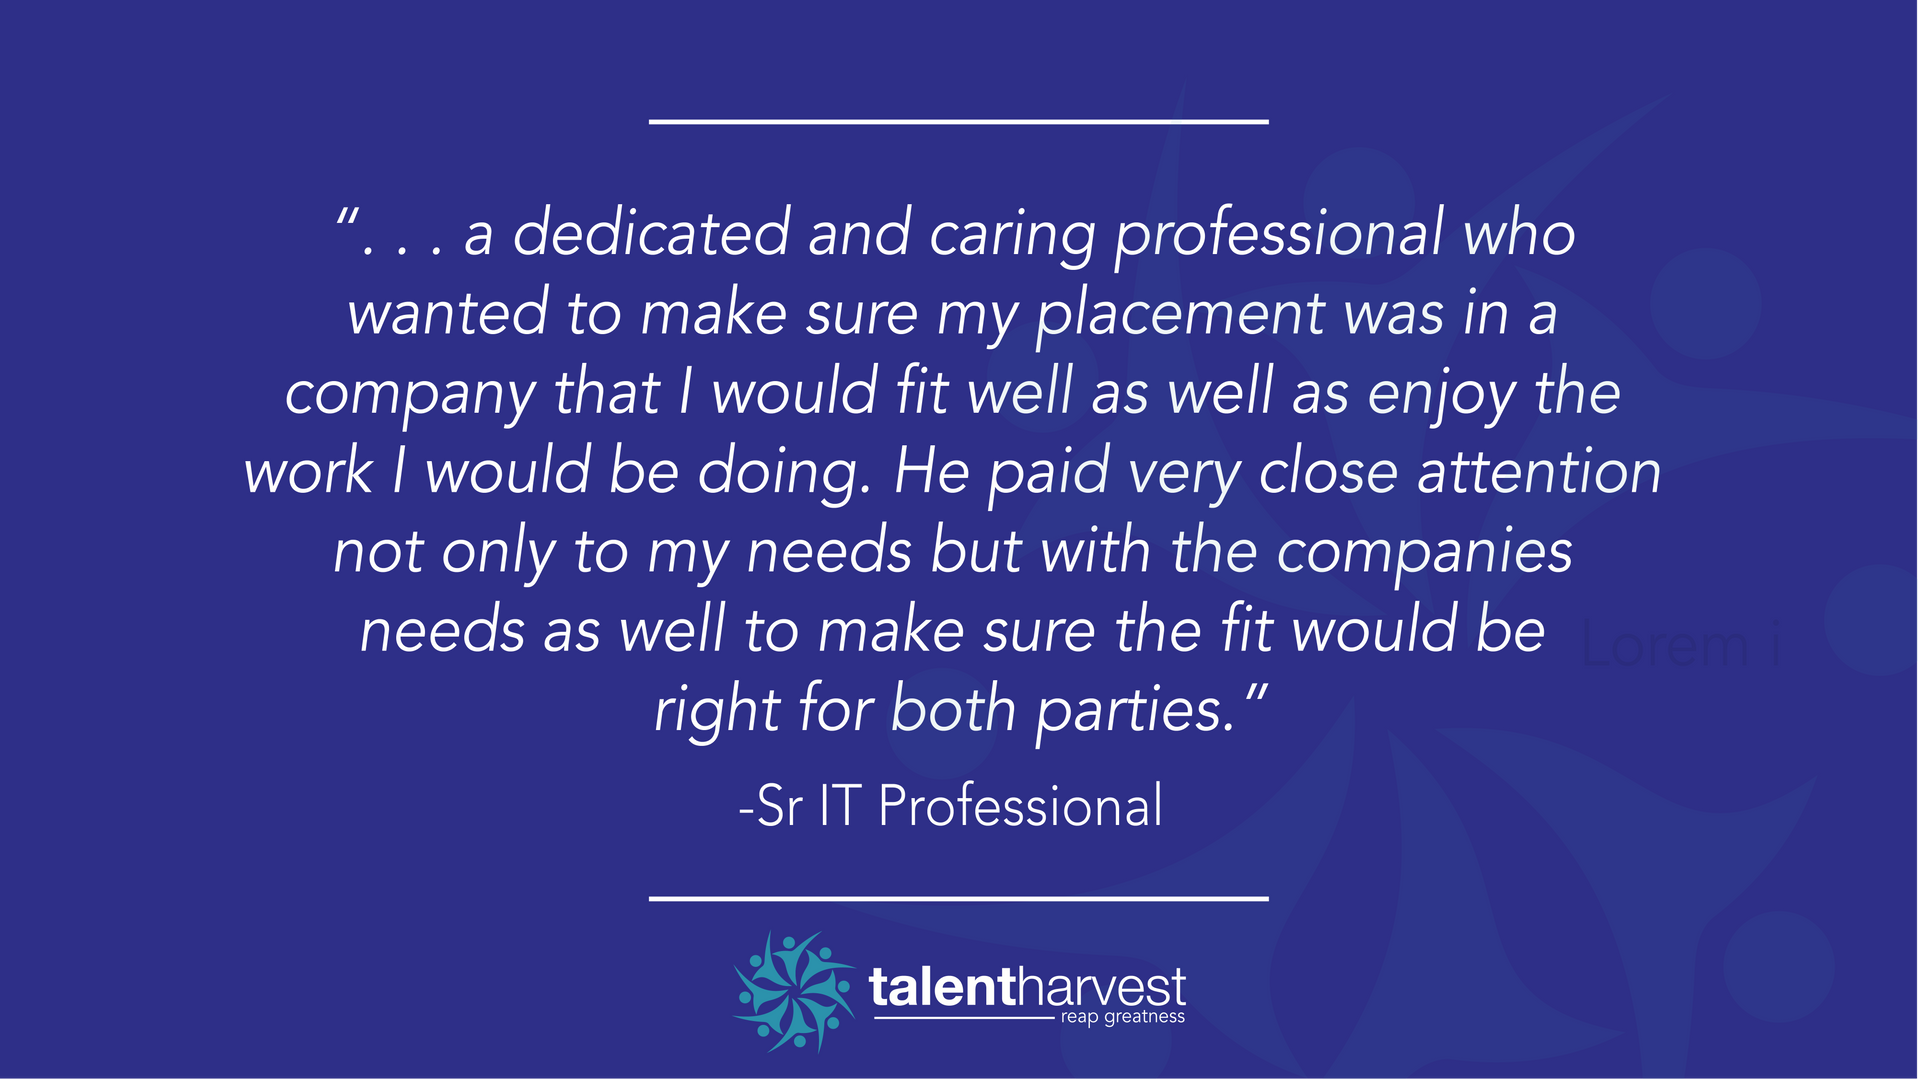 Testimonial from a client